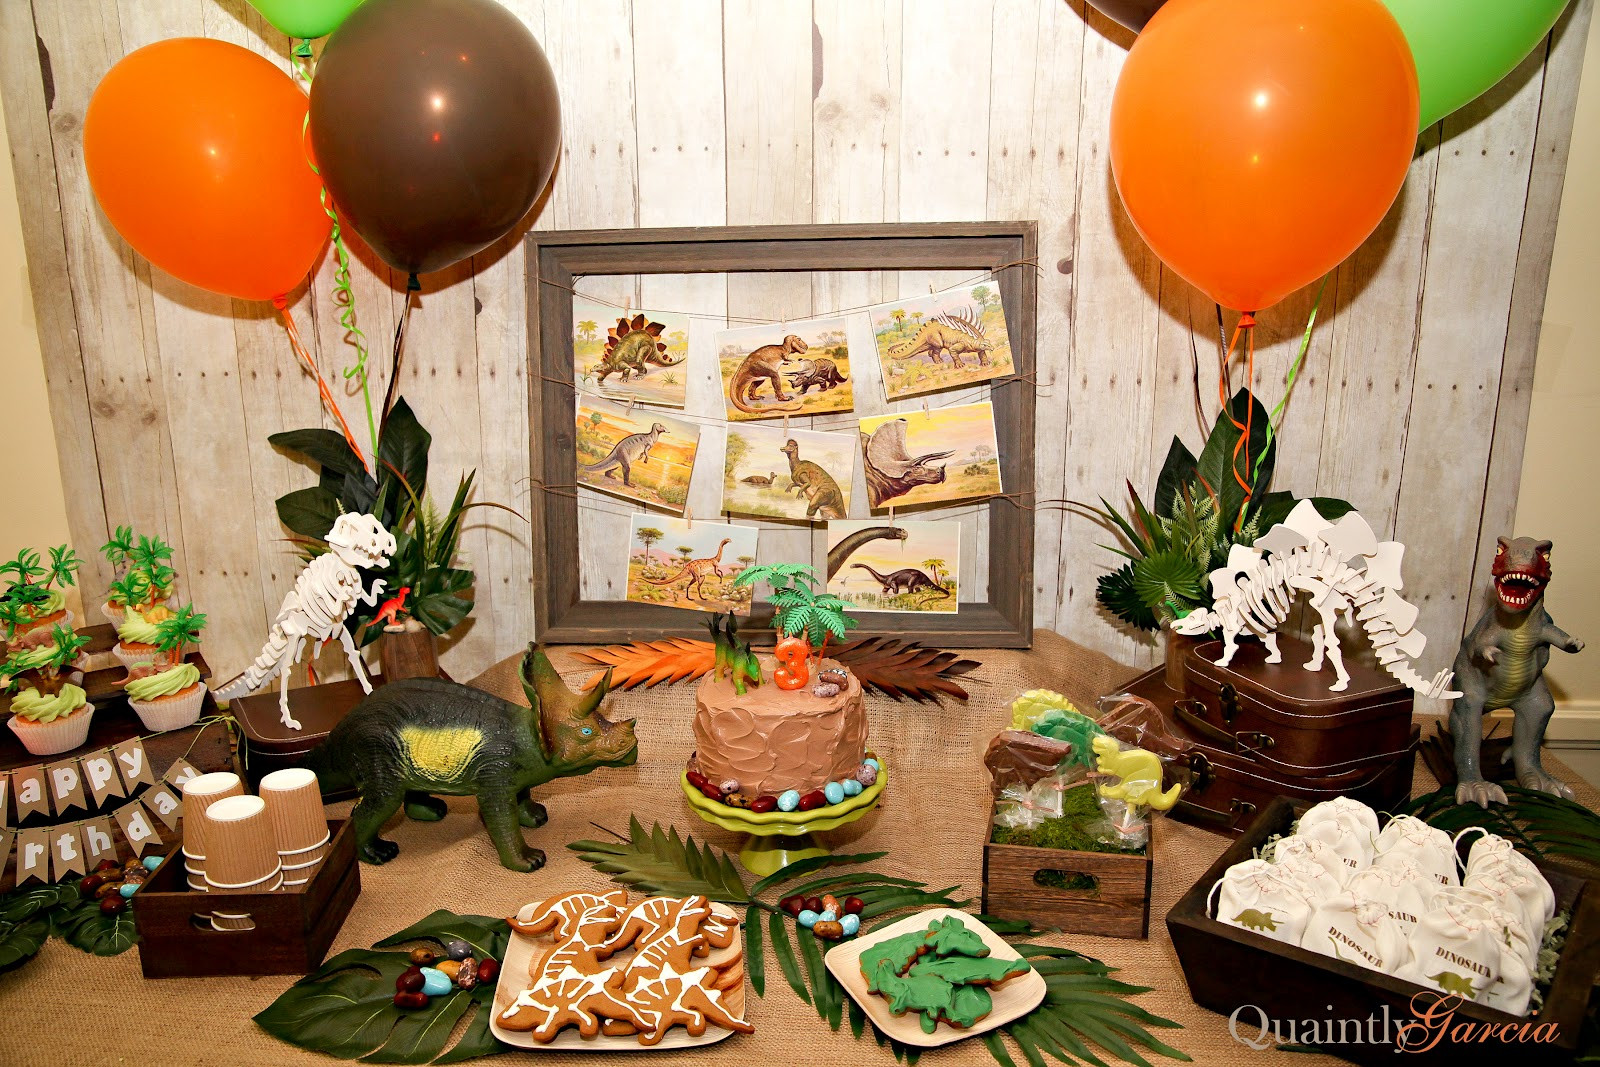 Best ideas about Dinosaur Birthday Party Decorations . Save or Pin Quaintly Garcia Julian s Dinosaur Party at the Natural Now.